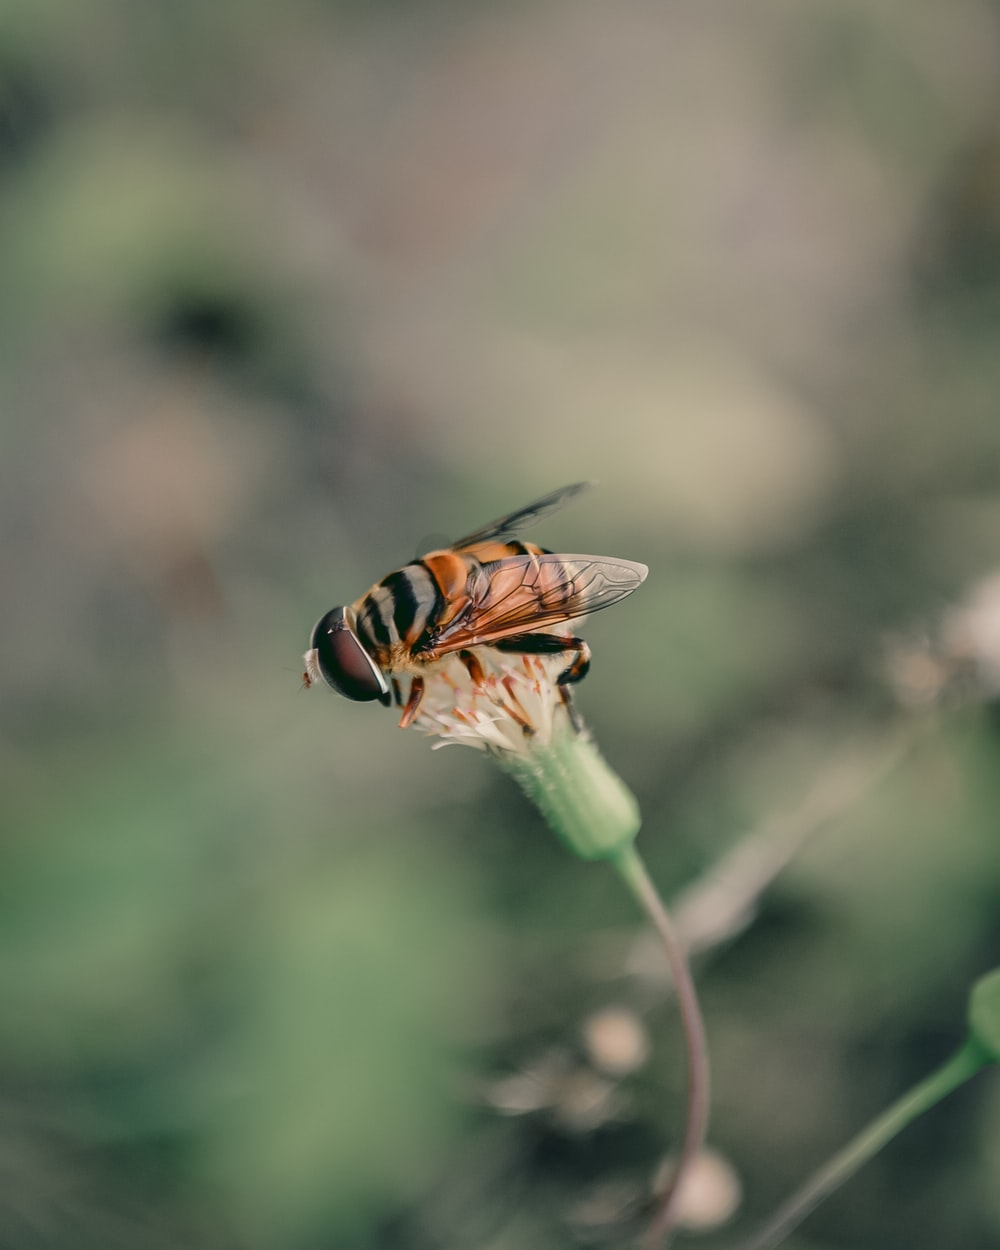 yellow and black bee on green plant